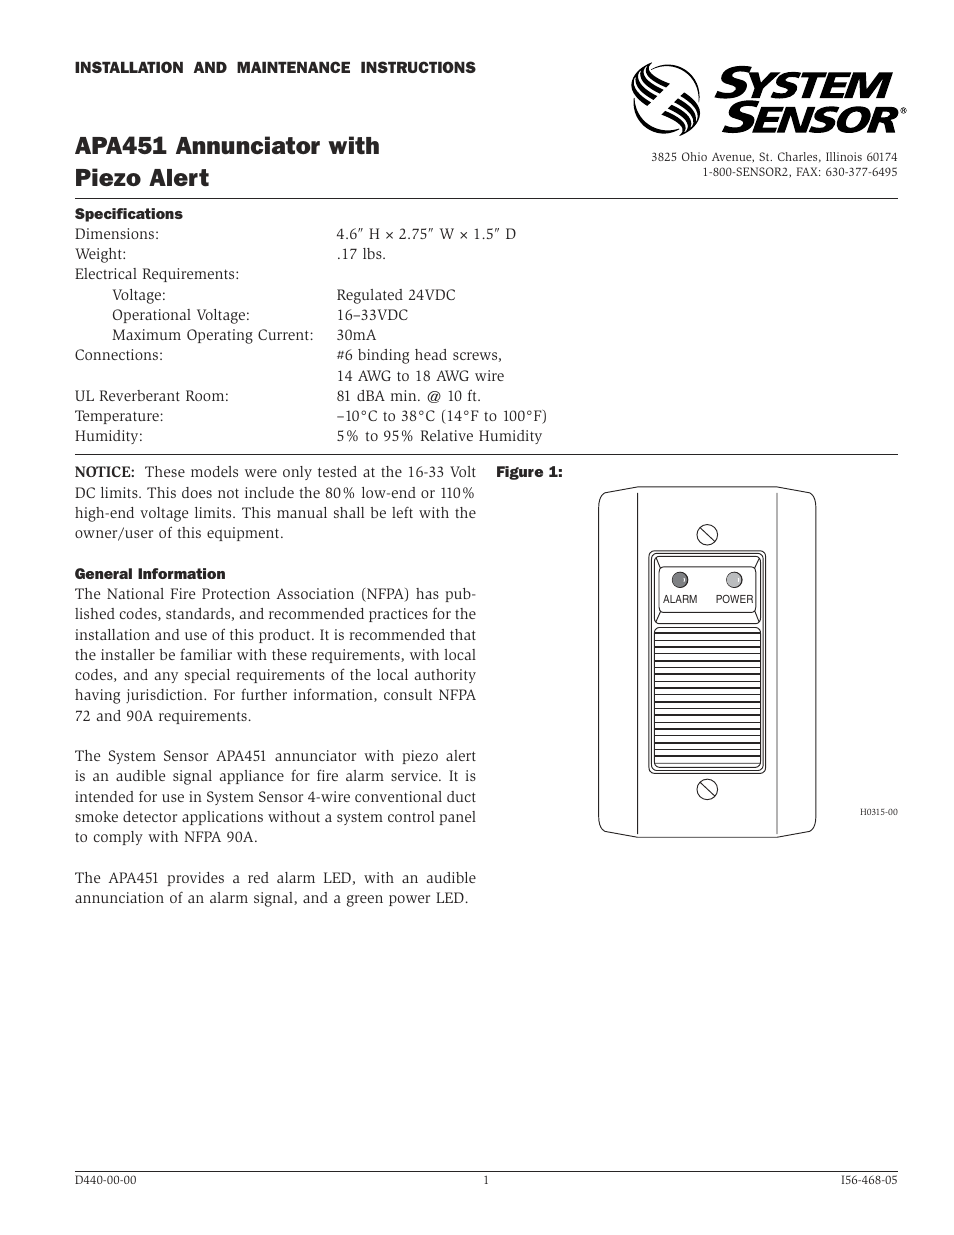 fire alarm wiring practices manual gamewell fire alarm wiring diagram